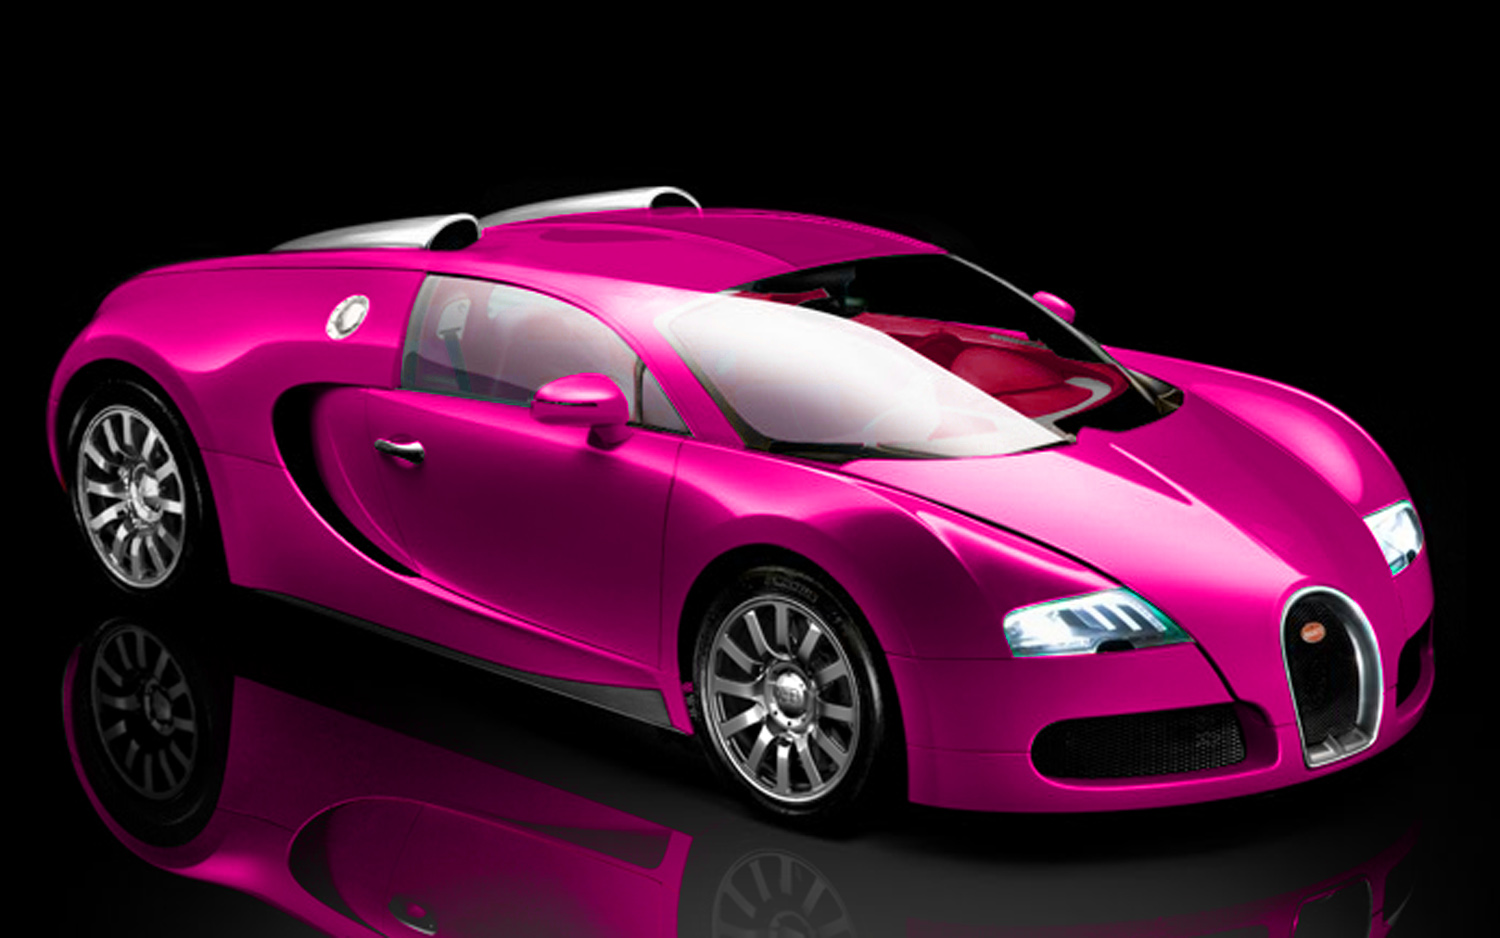 Bugatti Veyron New Car Price